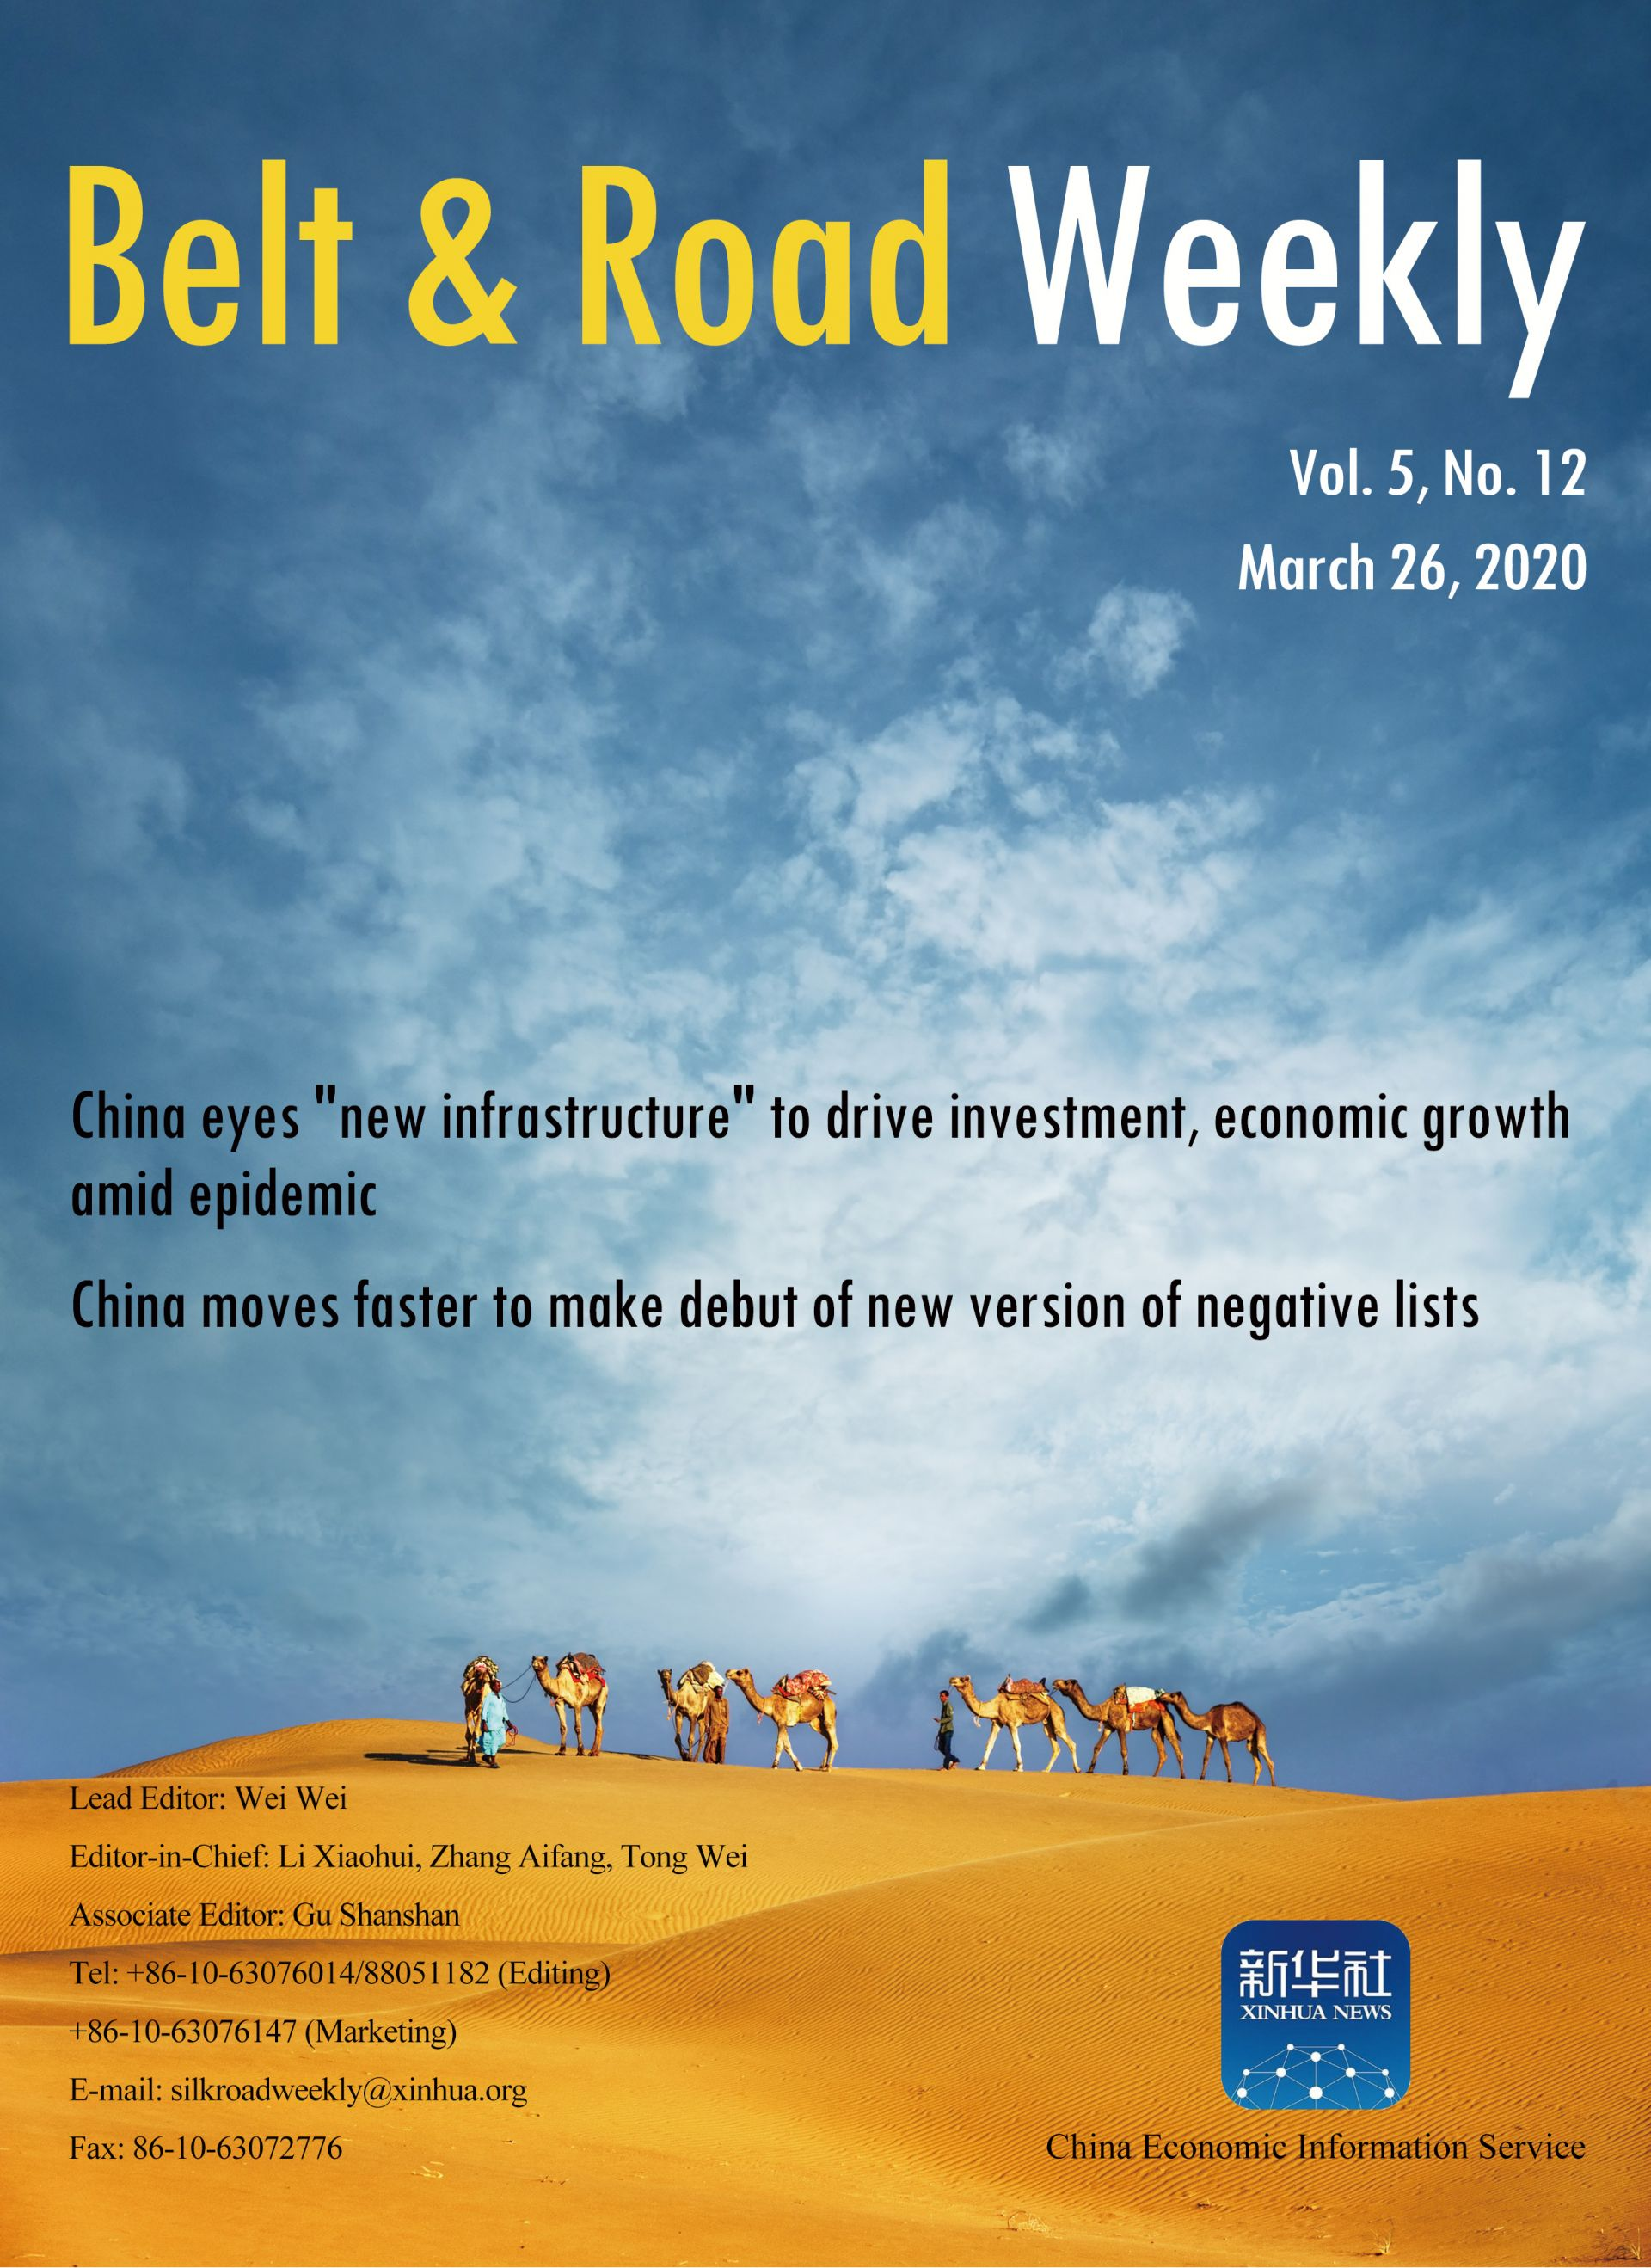 Belt & Road Weekly Vol.5 No. 12